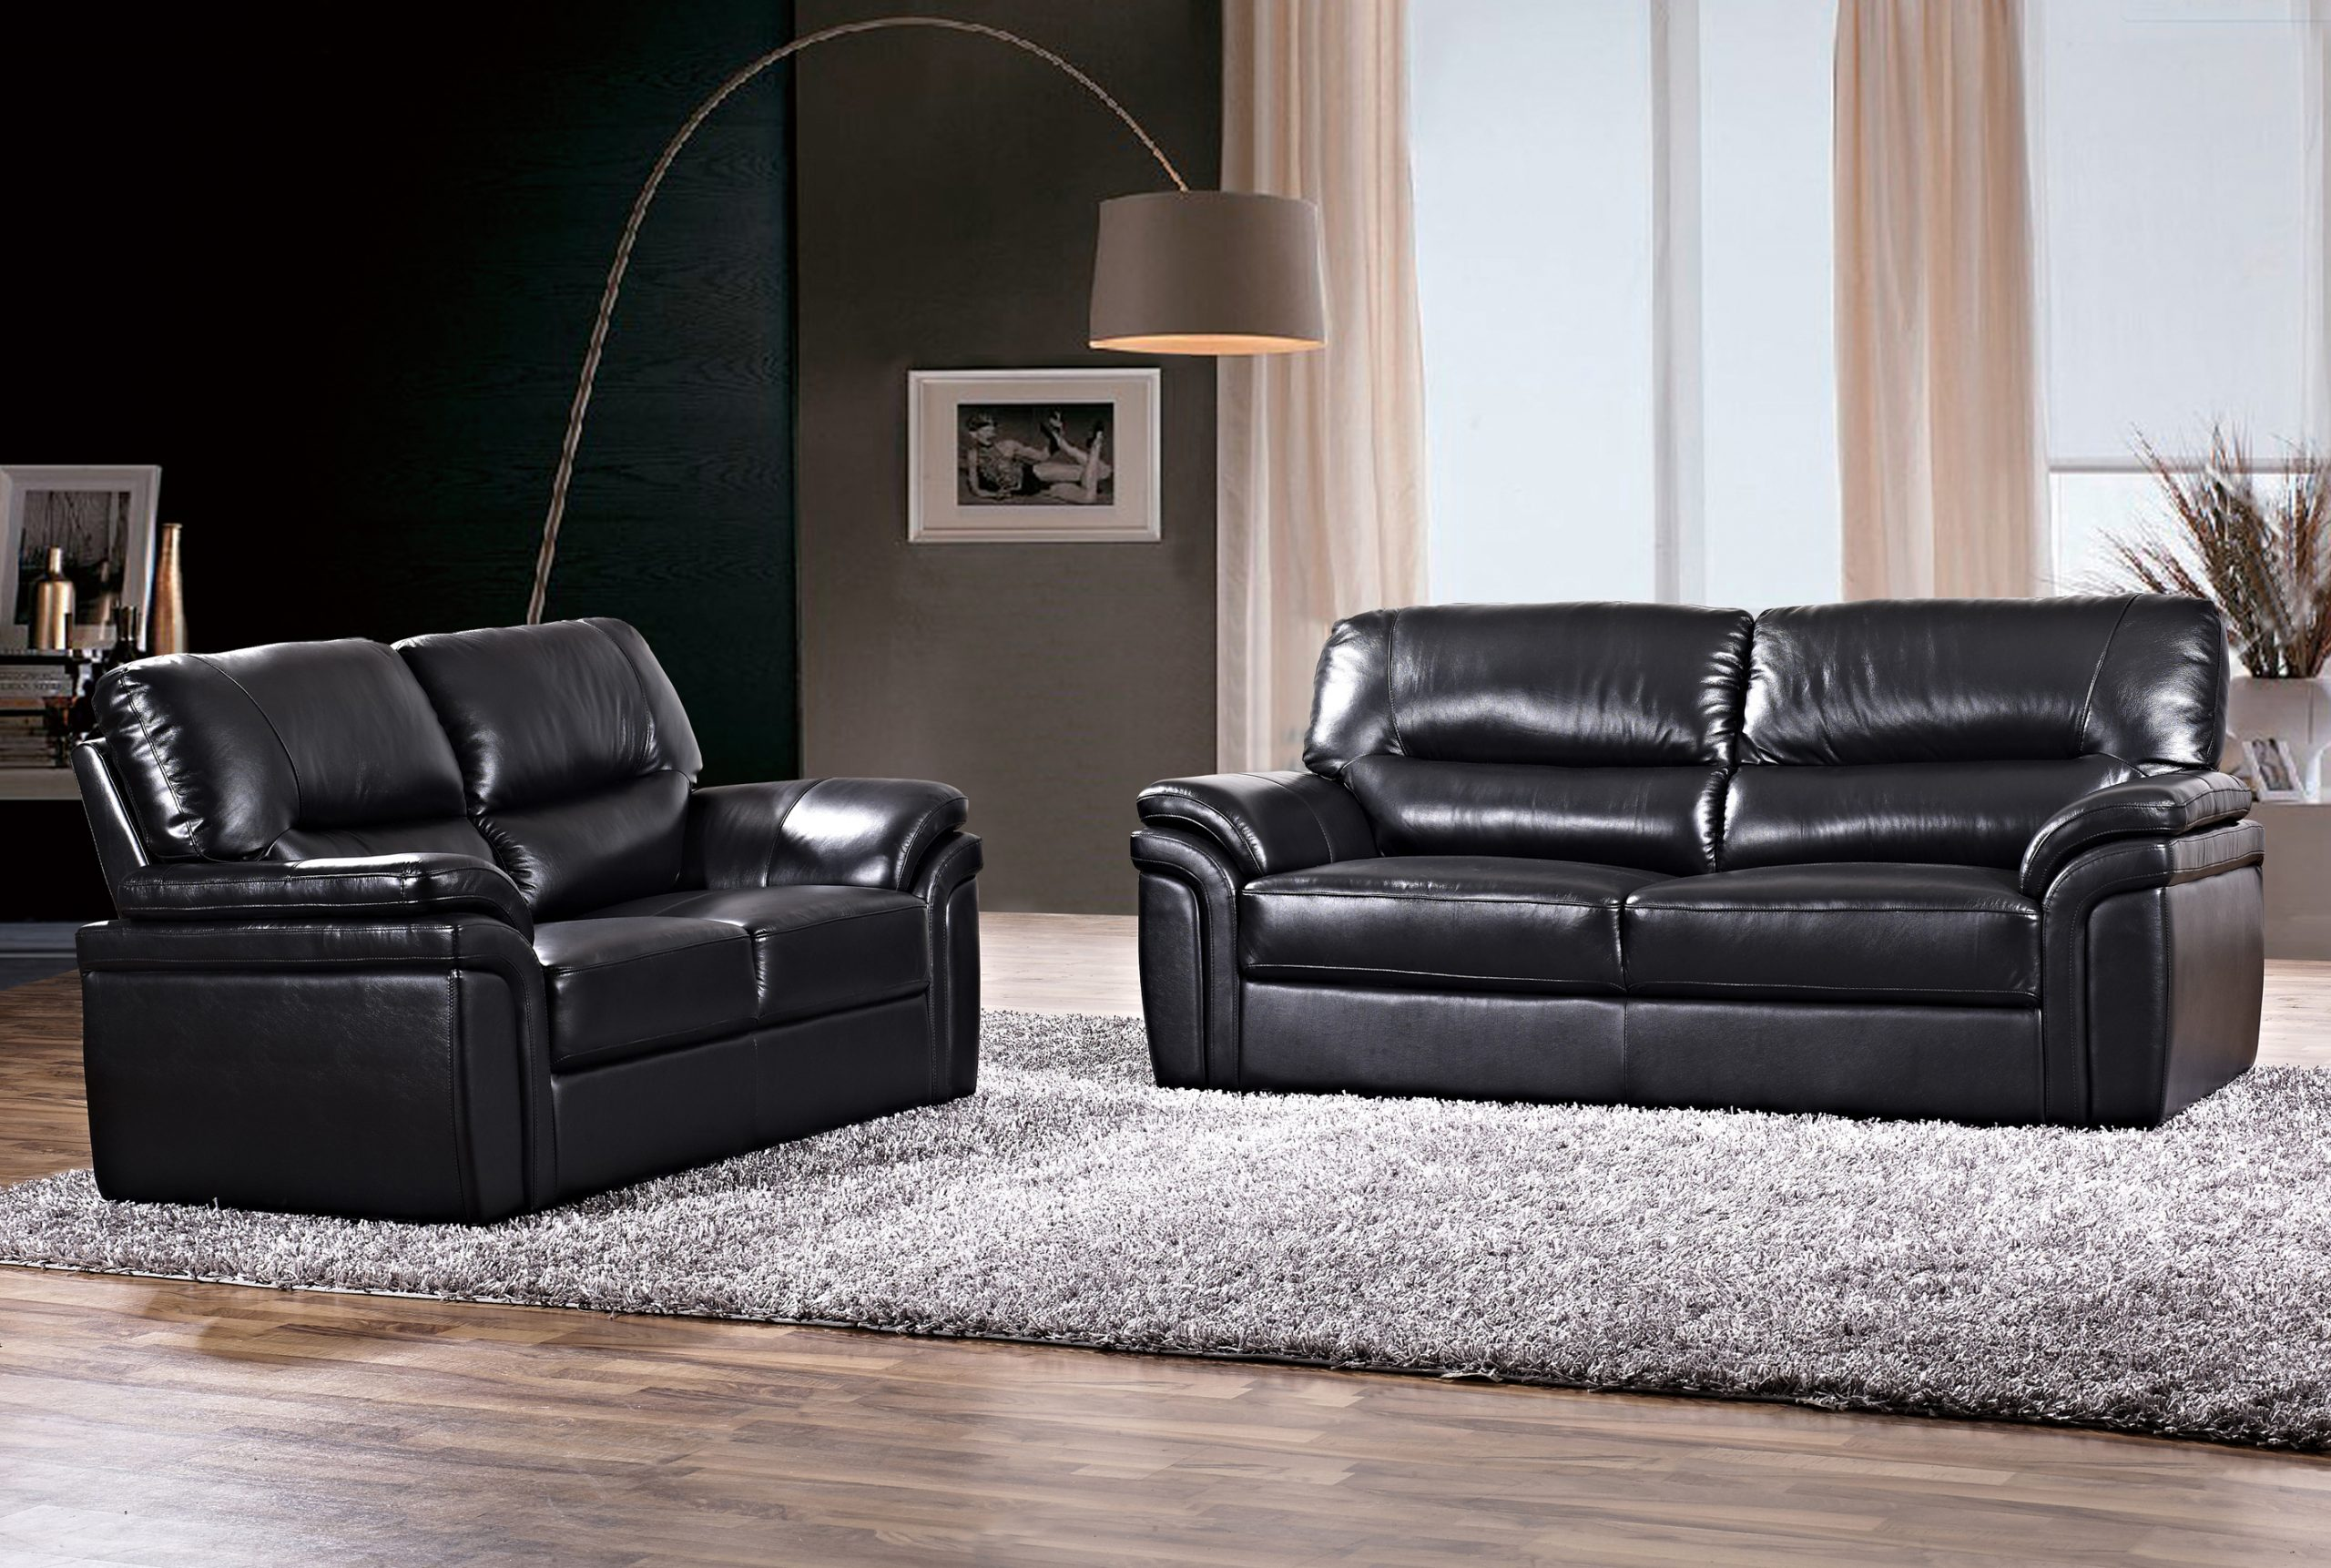 Aintree Sofas Quality Furniture At Affordable Prices